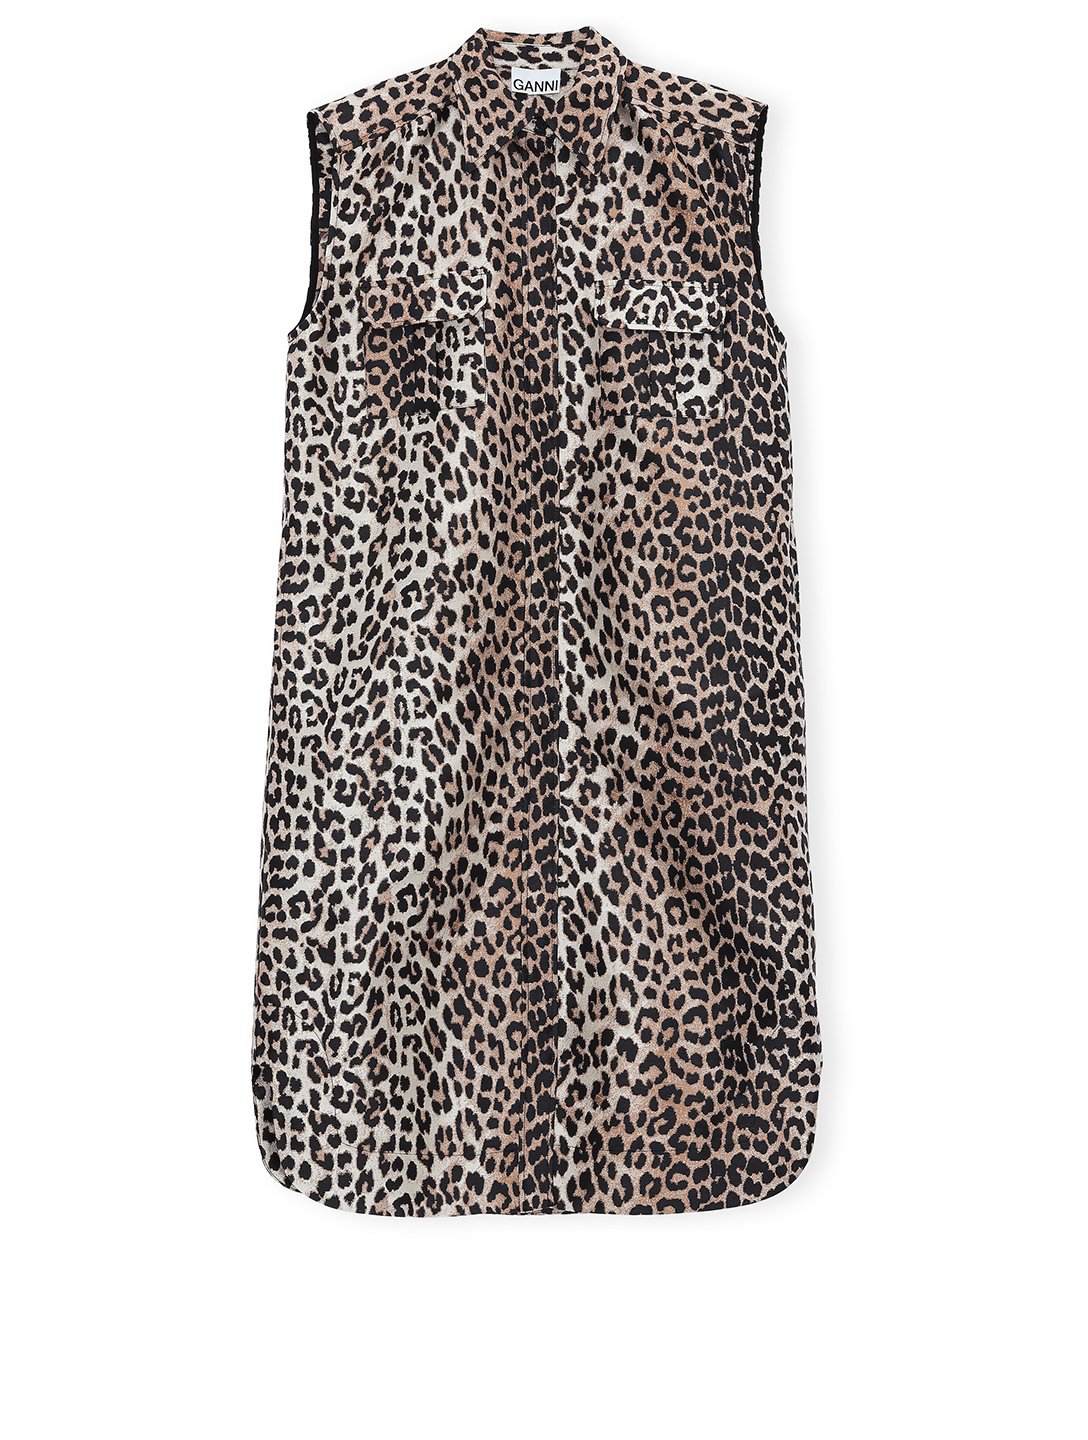 GANNI Sleeveless Shirt Dress In Leopard Print Women's Black